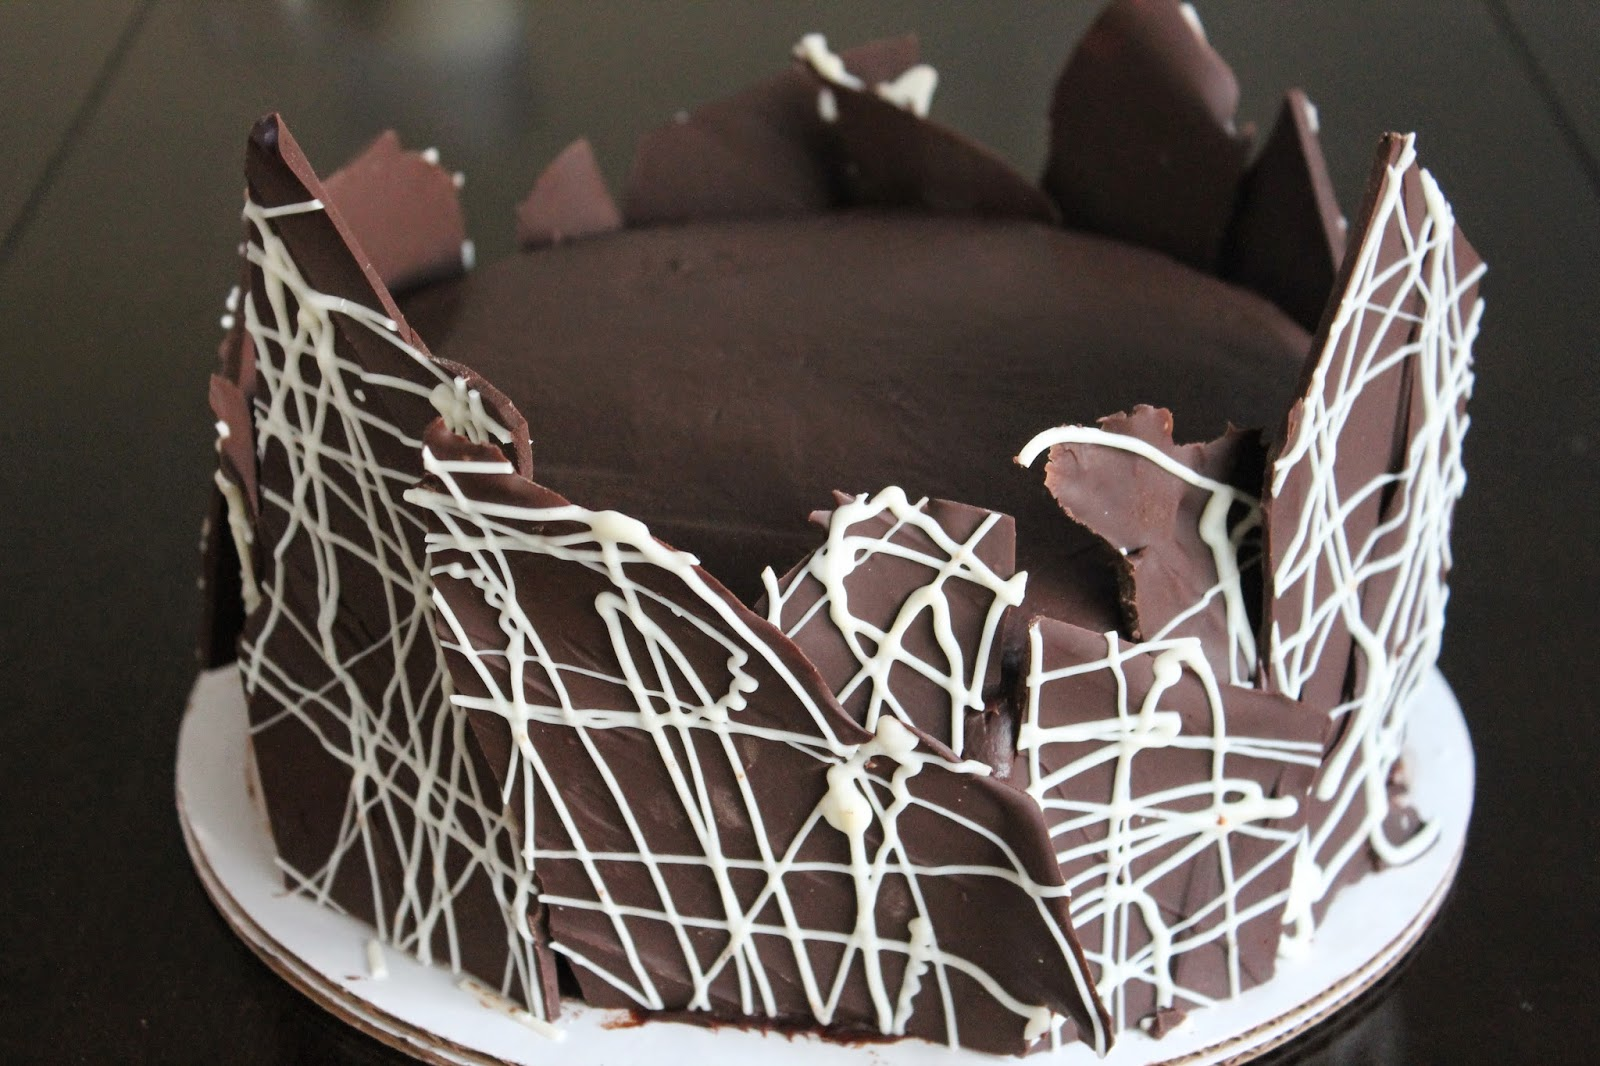 The Cultural Dish Ultra Chocolate Ganache Layer Cake